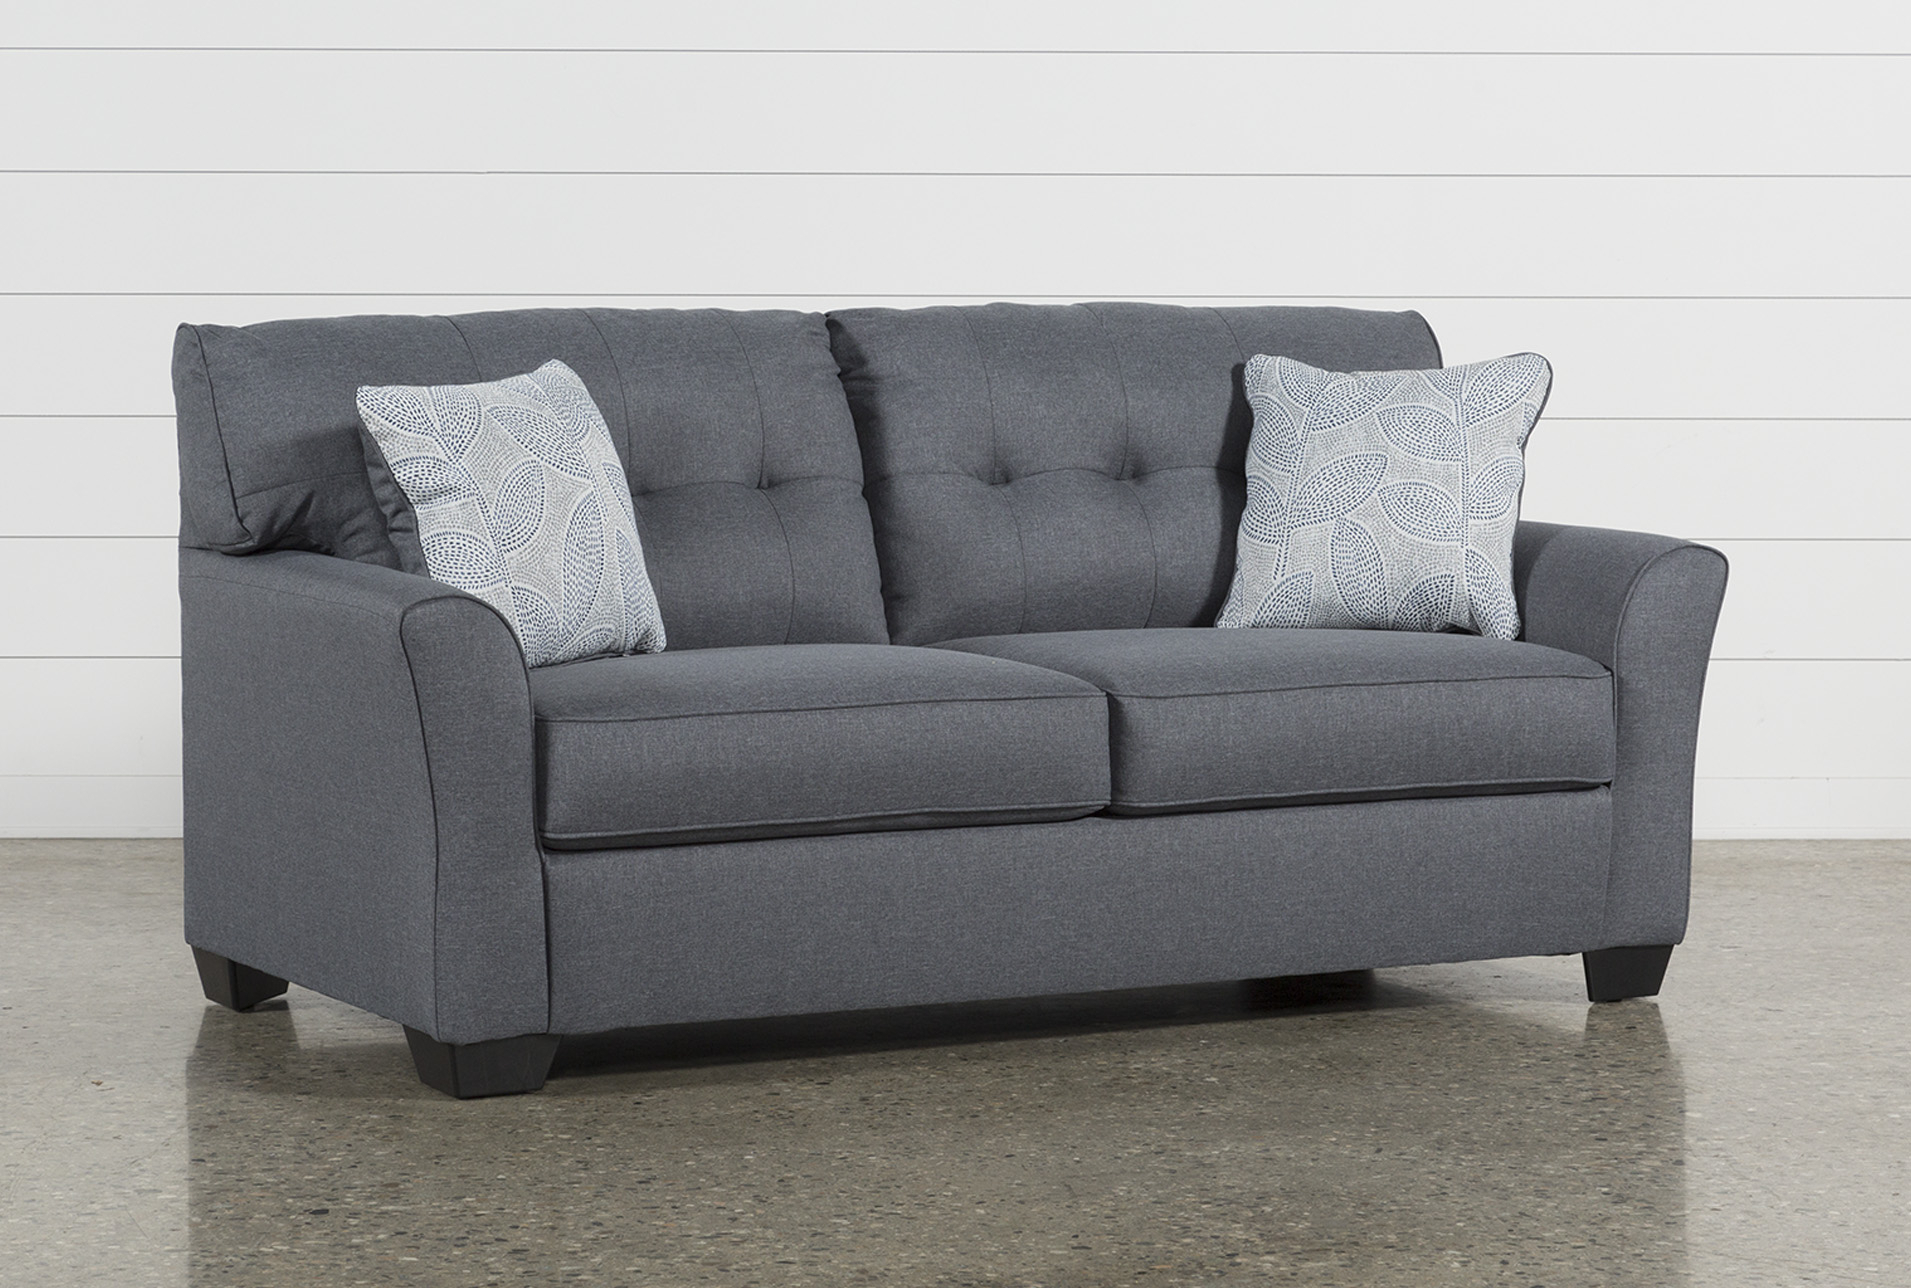 Jacoby Gunmetal Sofa In 2018 | Products | Pinterest | Sofa, Sleeper Within Mcdade Graphite Sofa Chairs (Image 8 of 25)